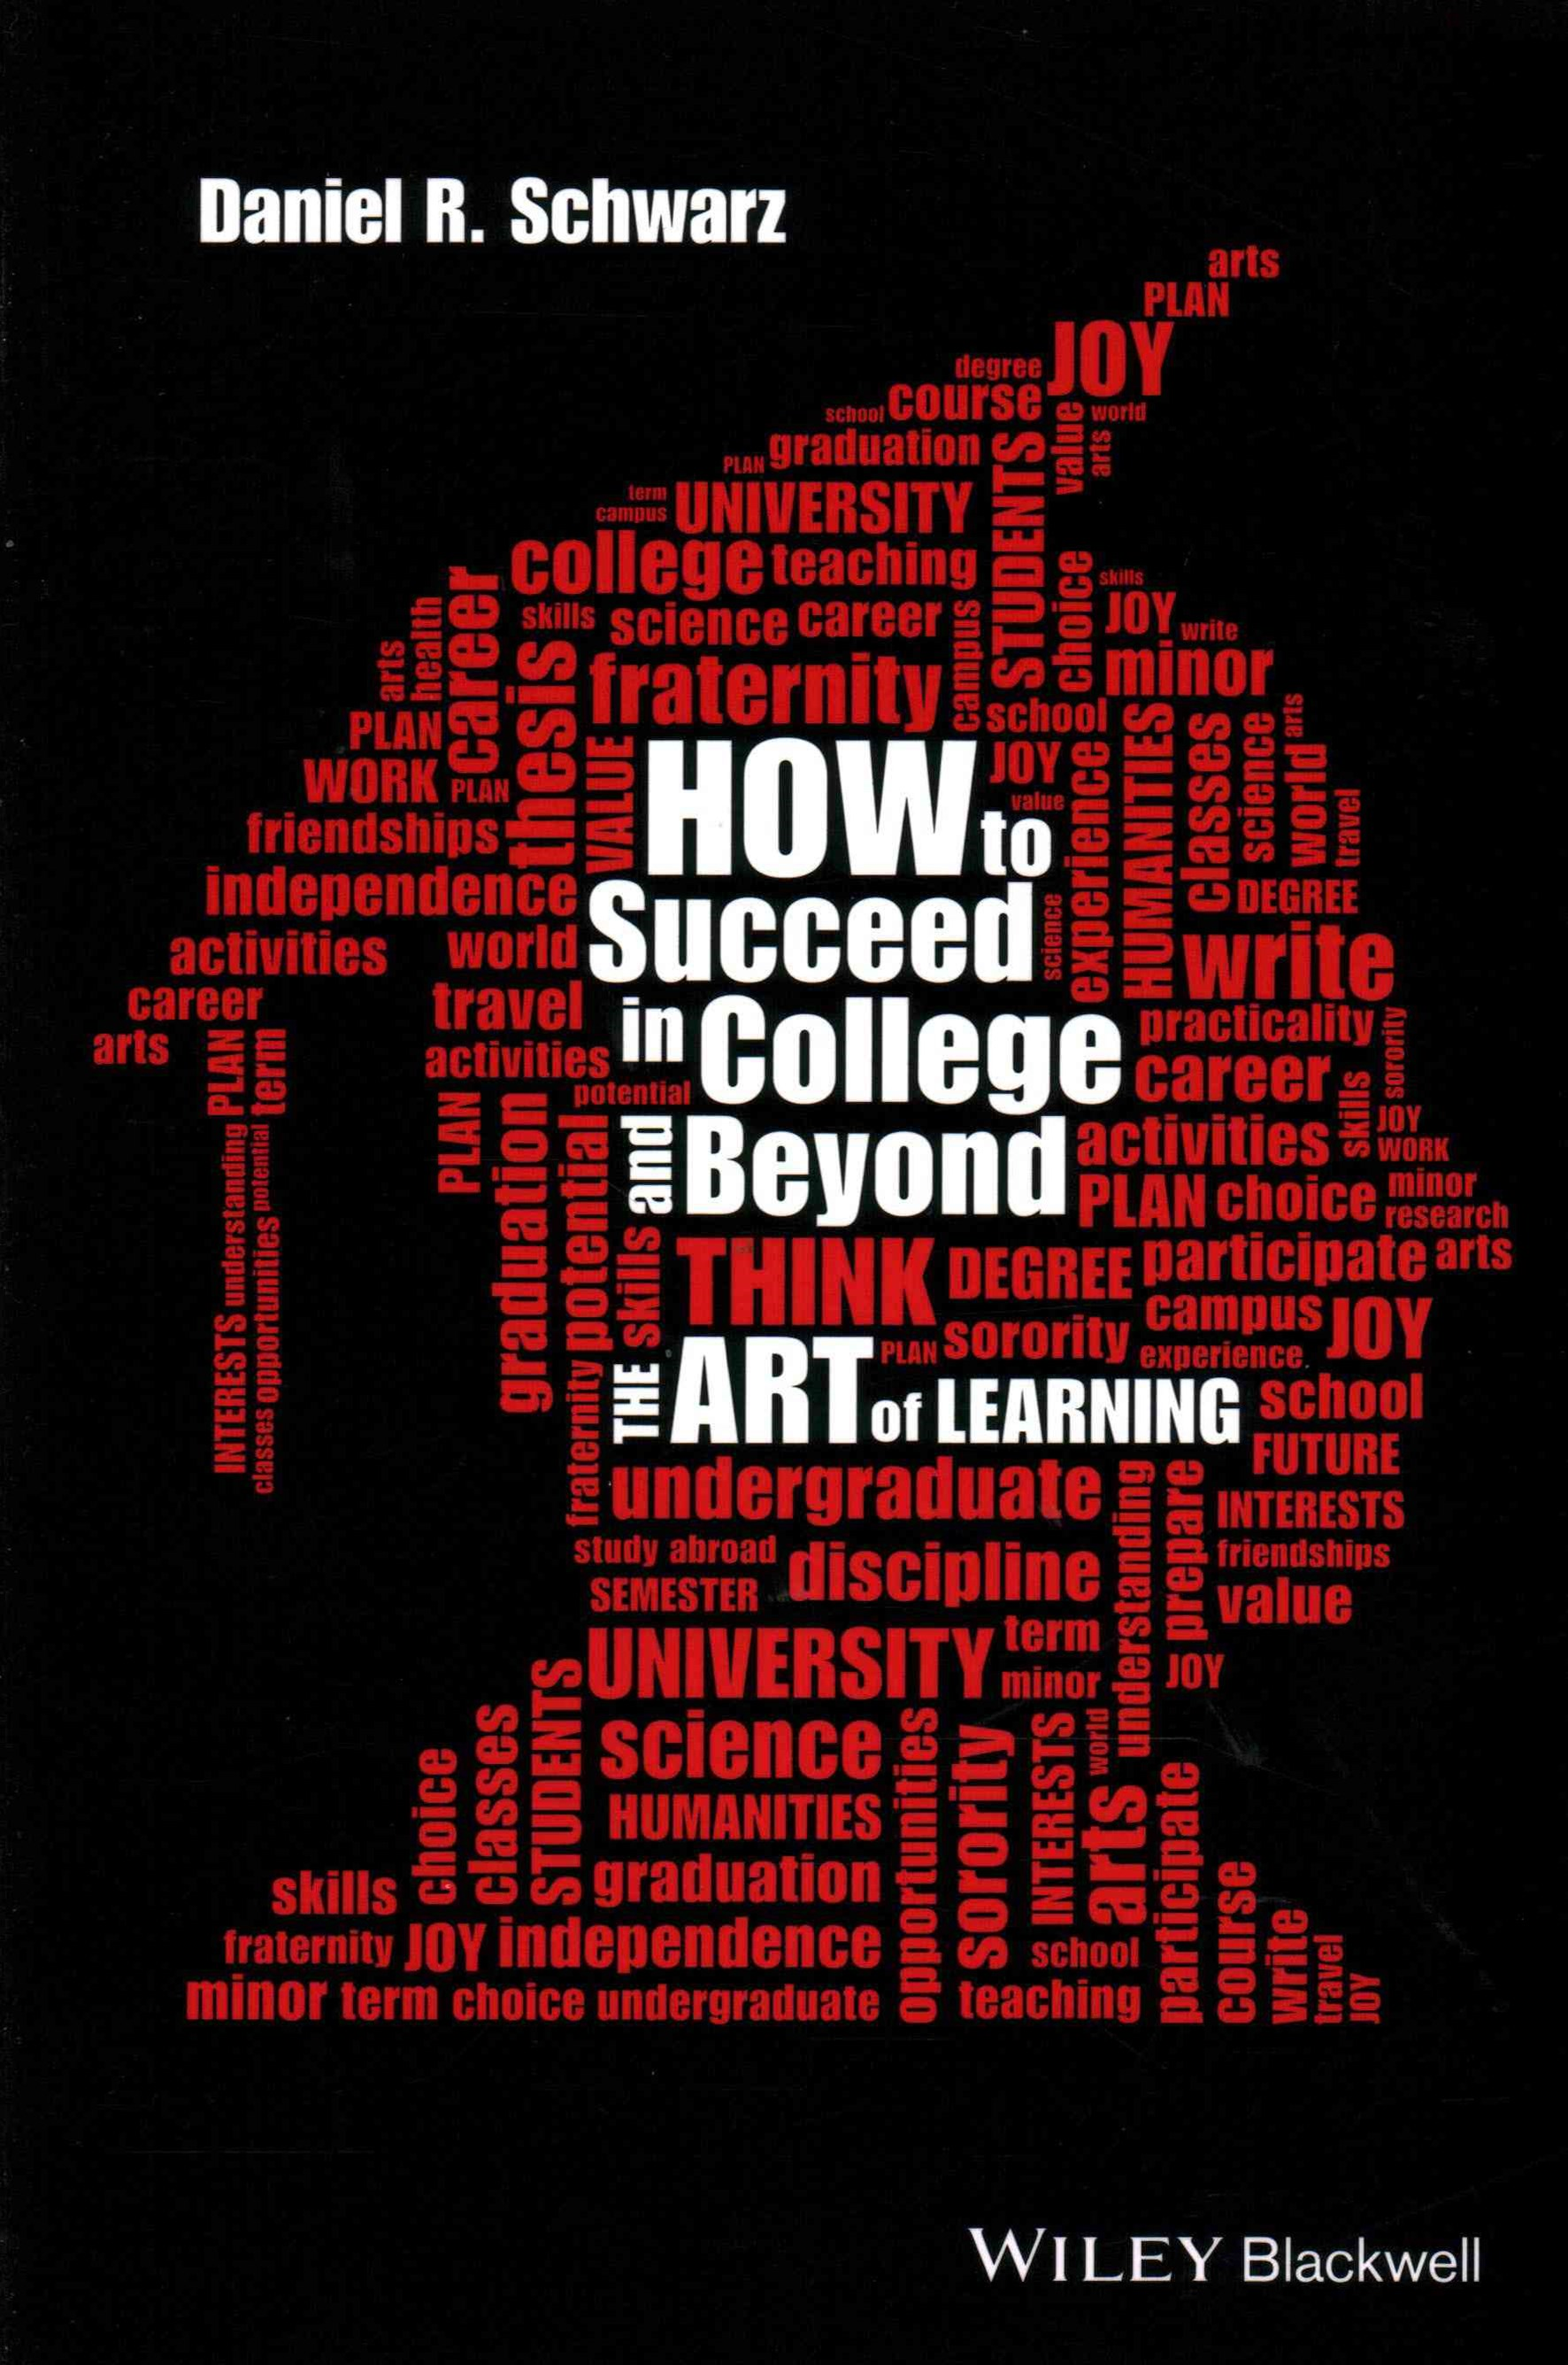 How to Succeed in College and Beyond - the Art of Learning